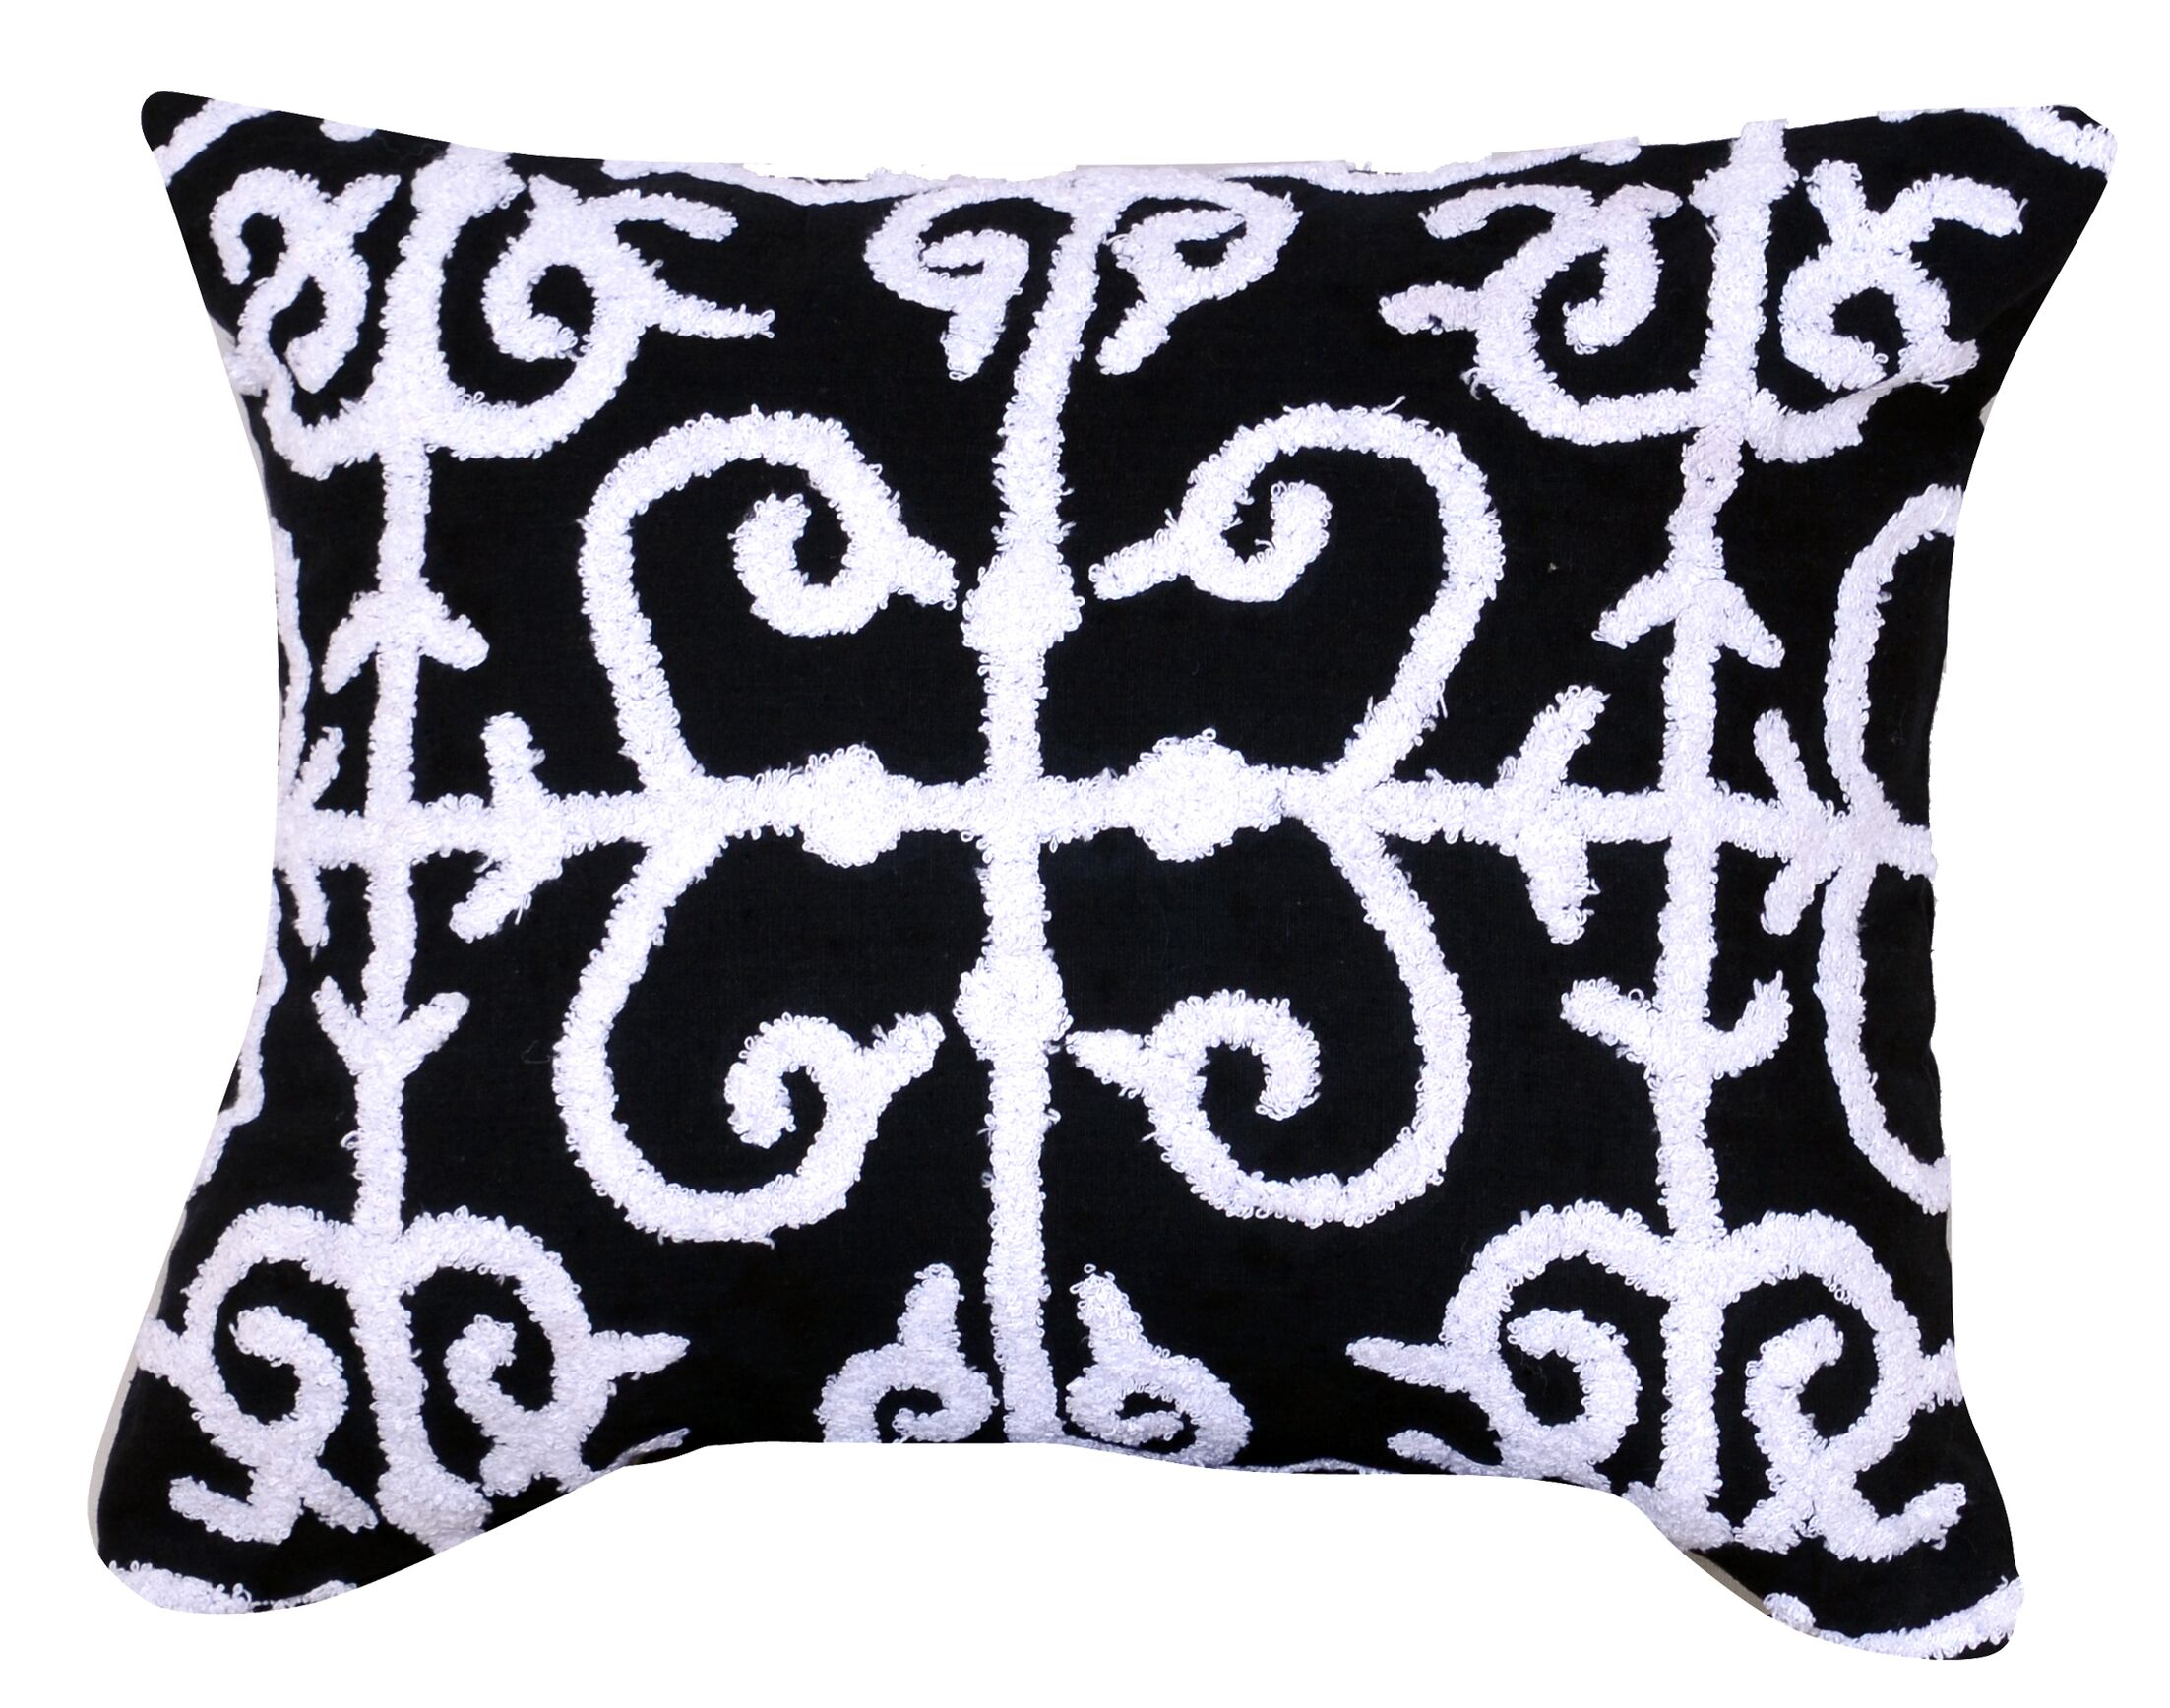 Kennison Embroidered Cotton Lumbar Pillow in Color: Black